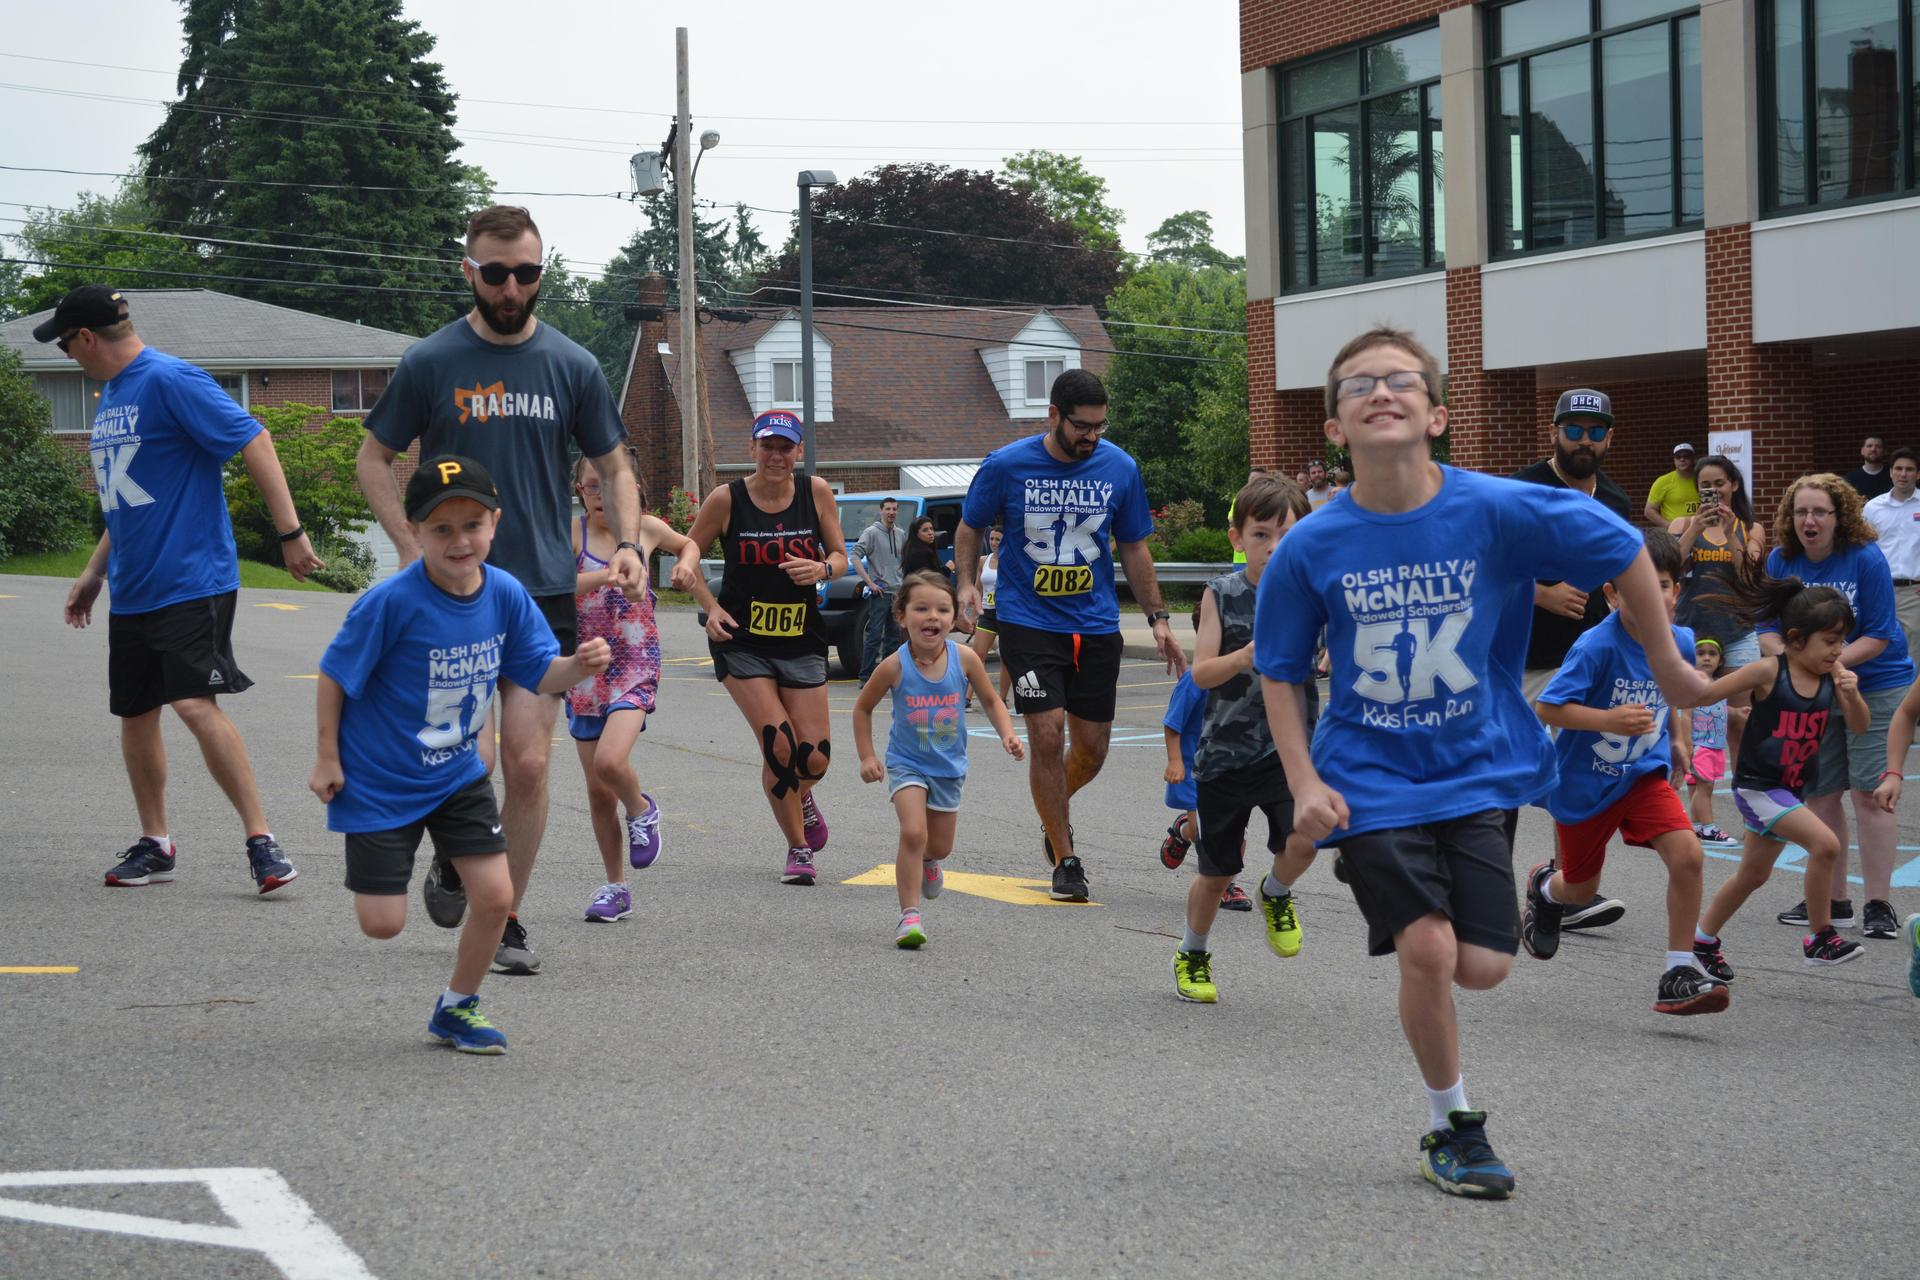 The children participating in the OLSH Rally for McNally Kids Fun Run start their race